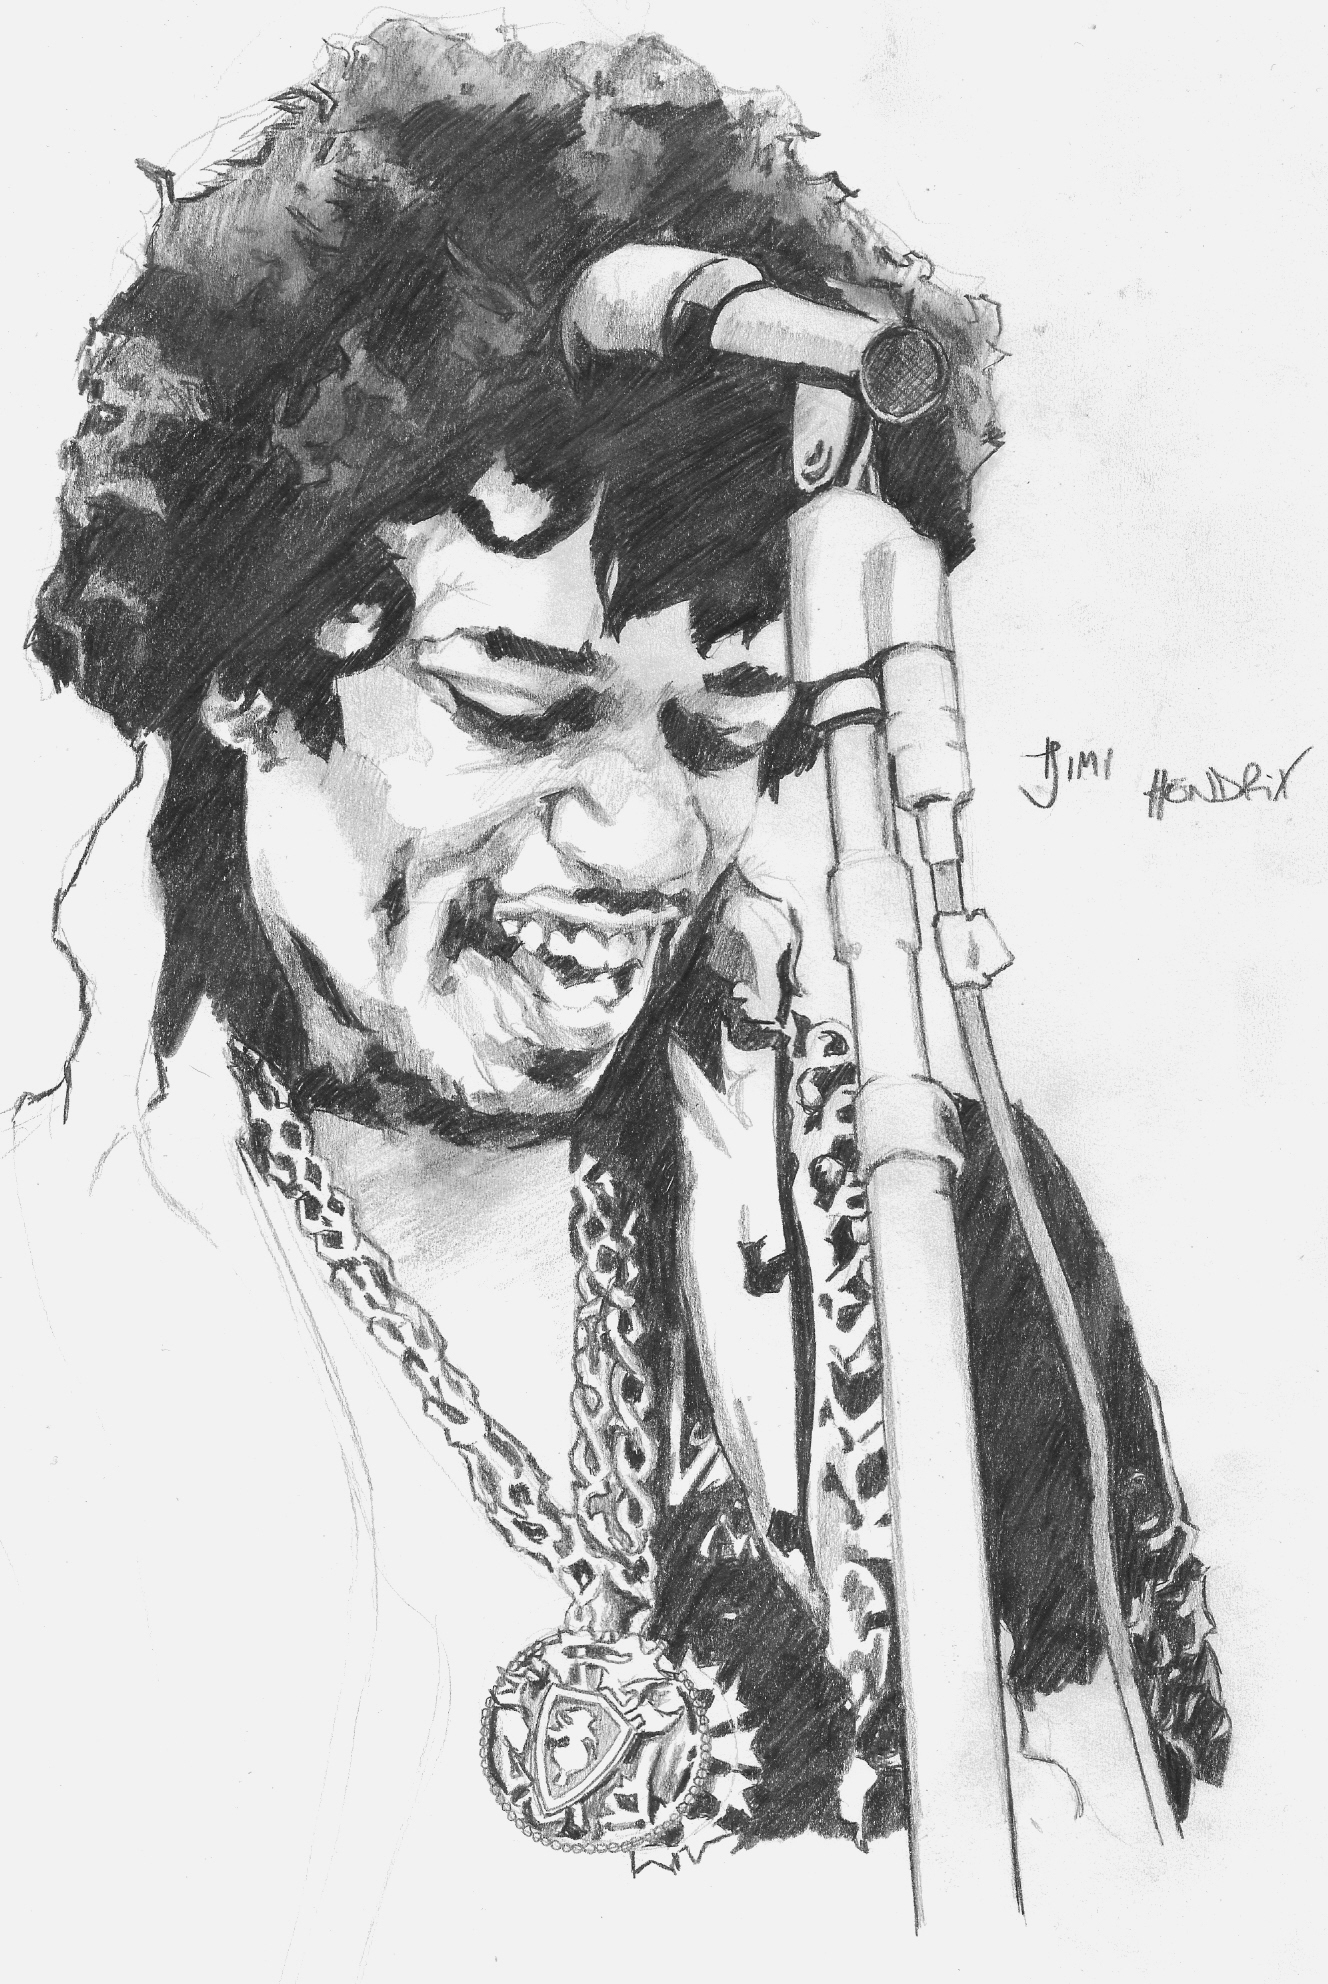 jimi hendrix jimi hendrix by al3va traditional art drawings portraits figures 2008